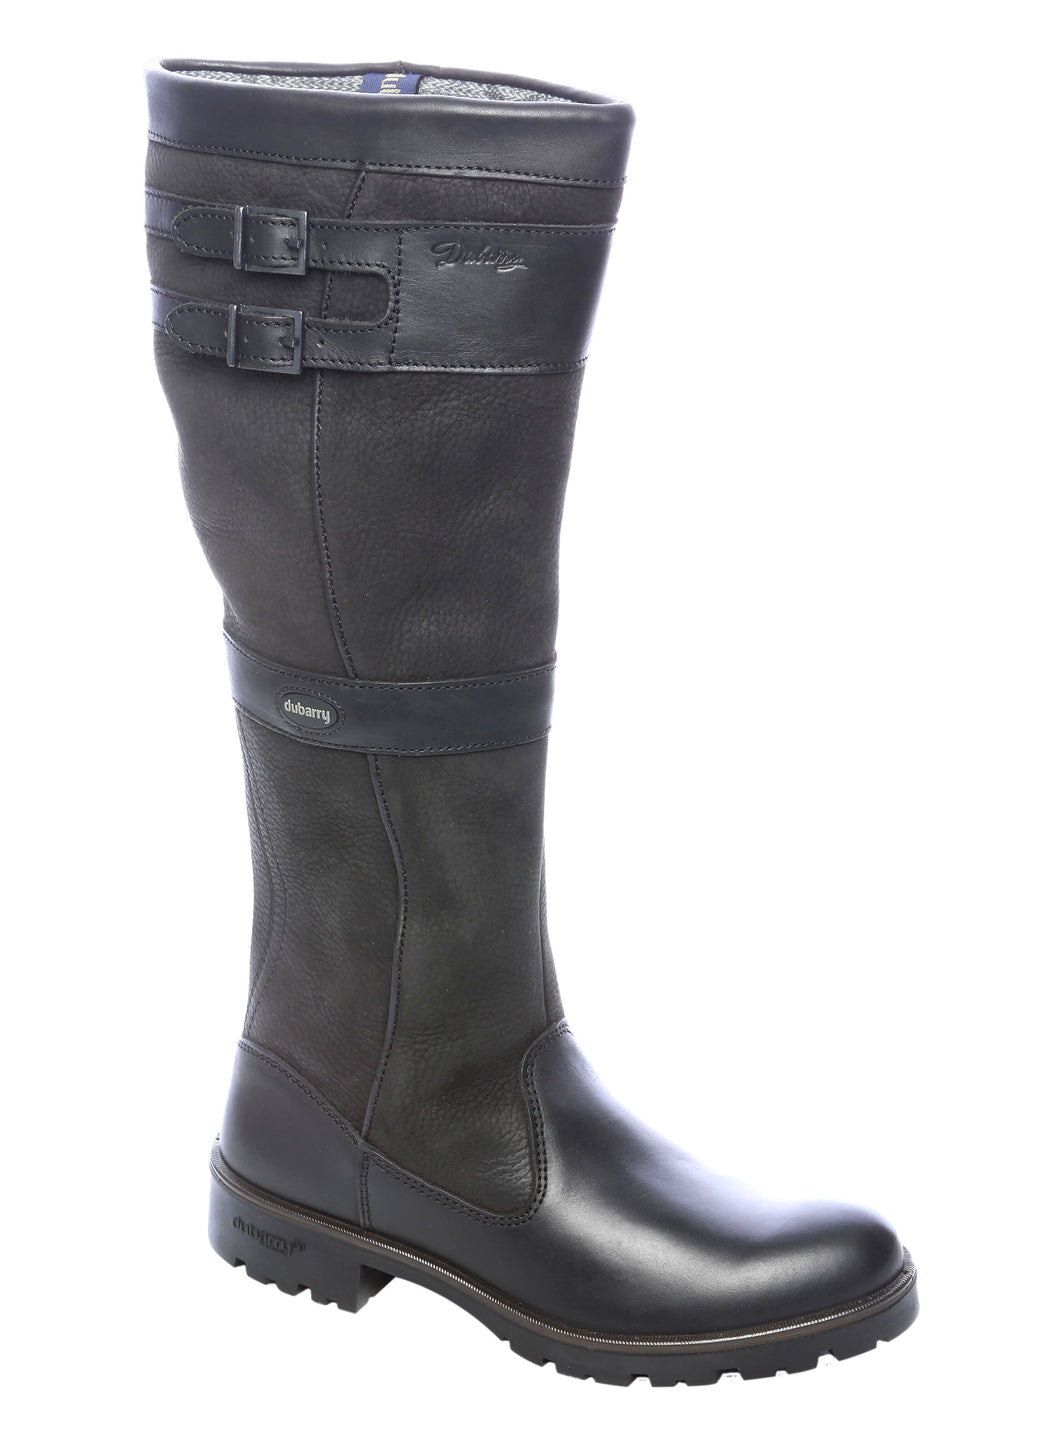 Dubarry Longford country boot black